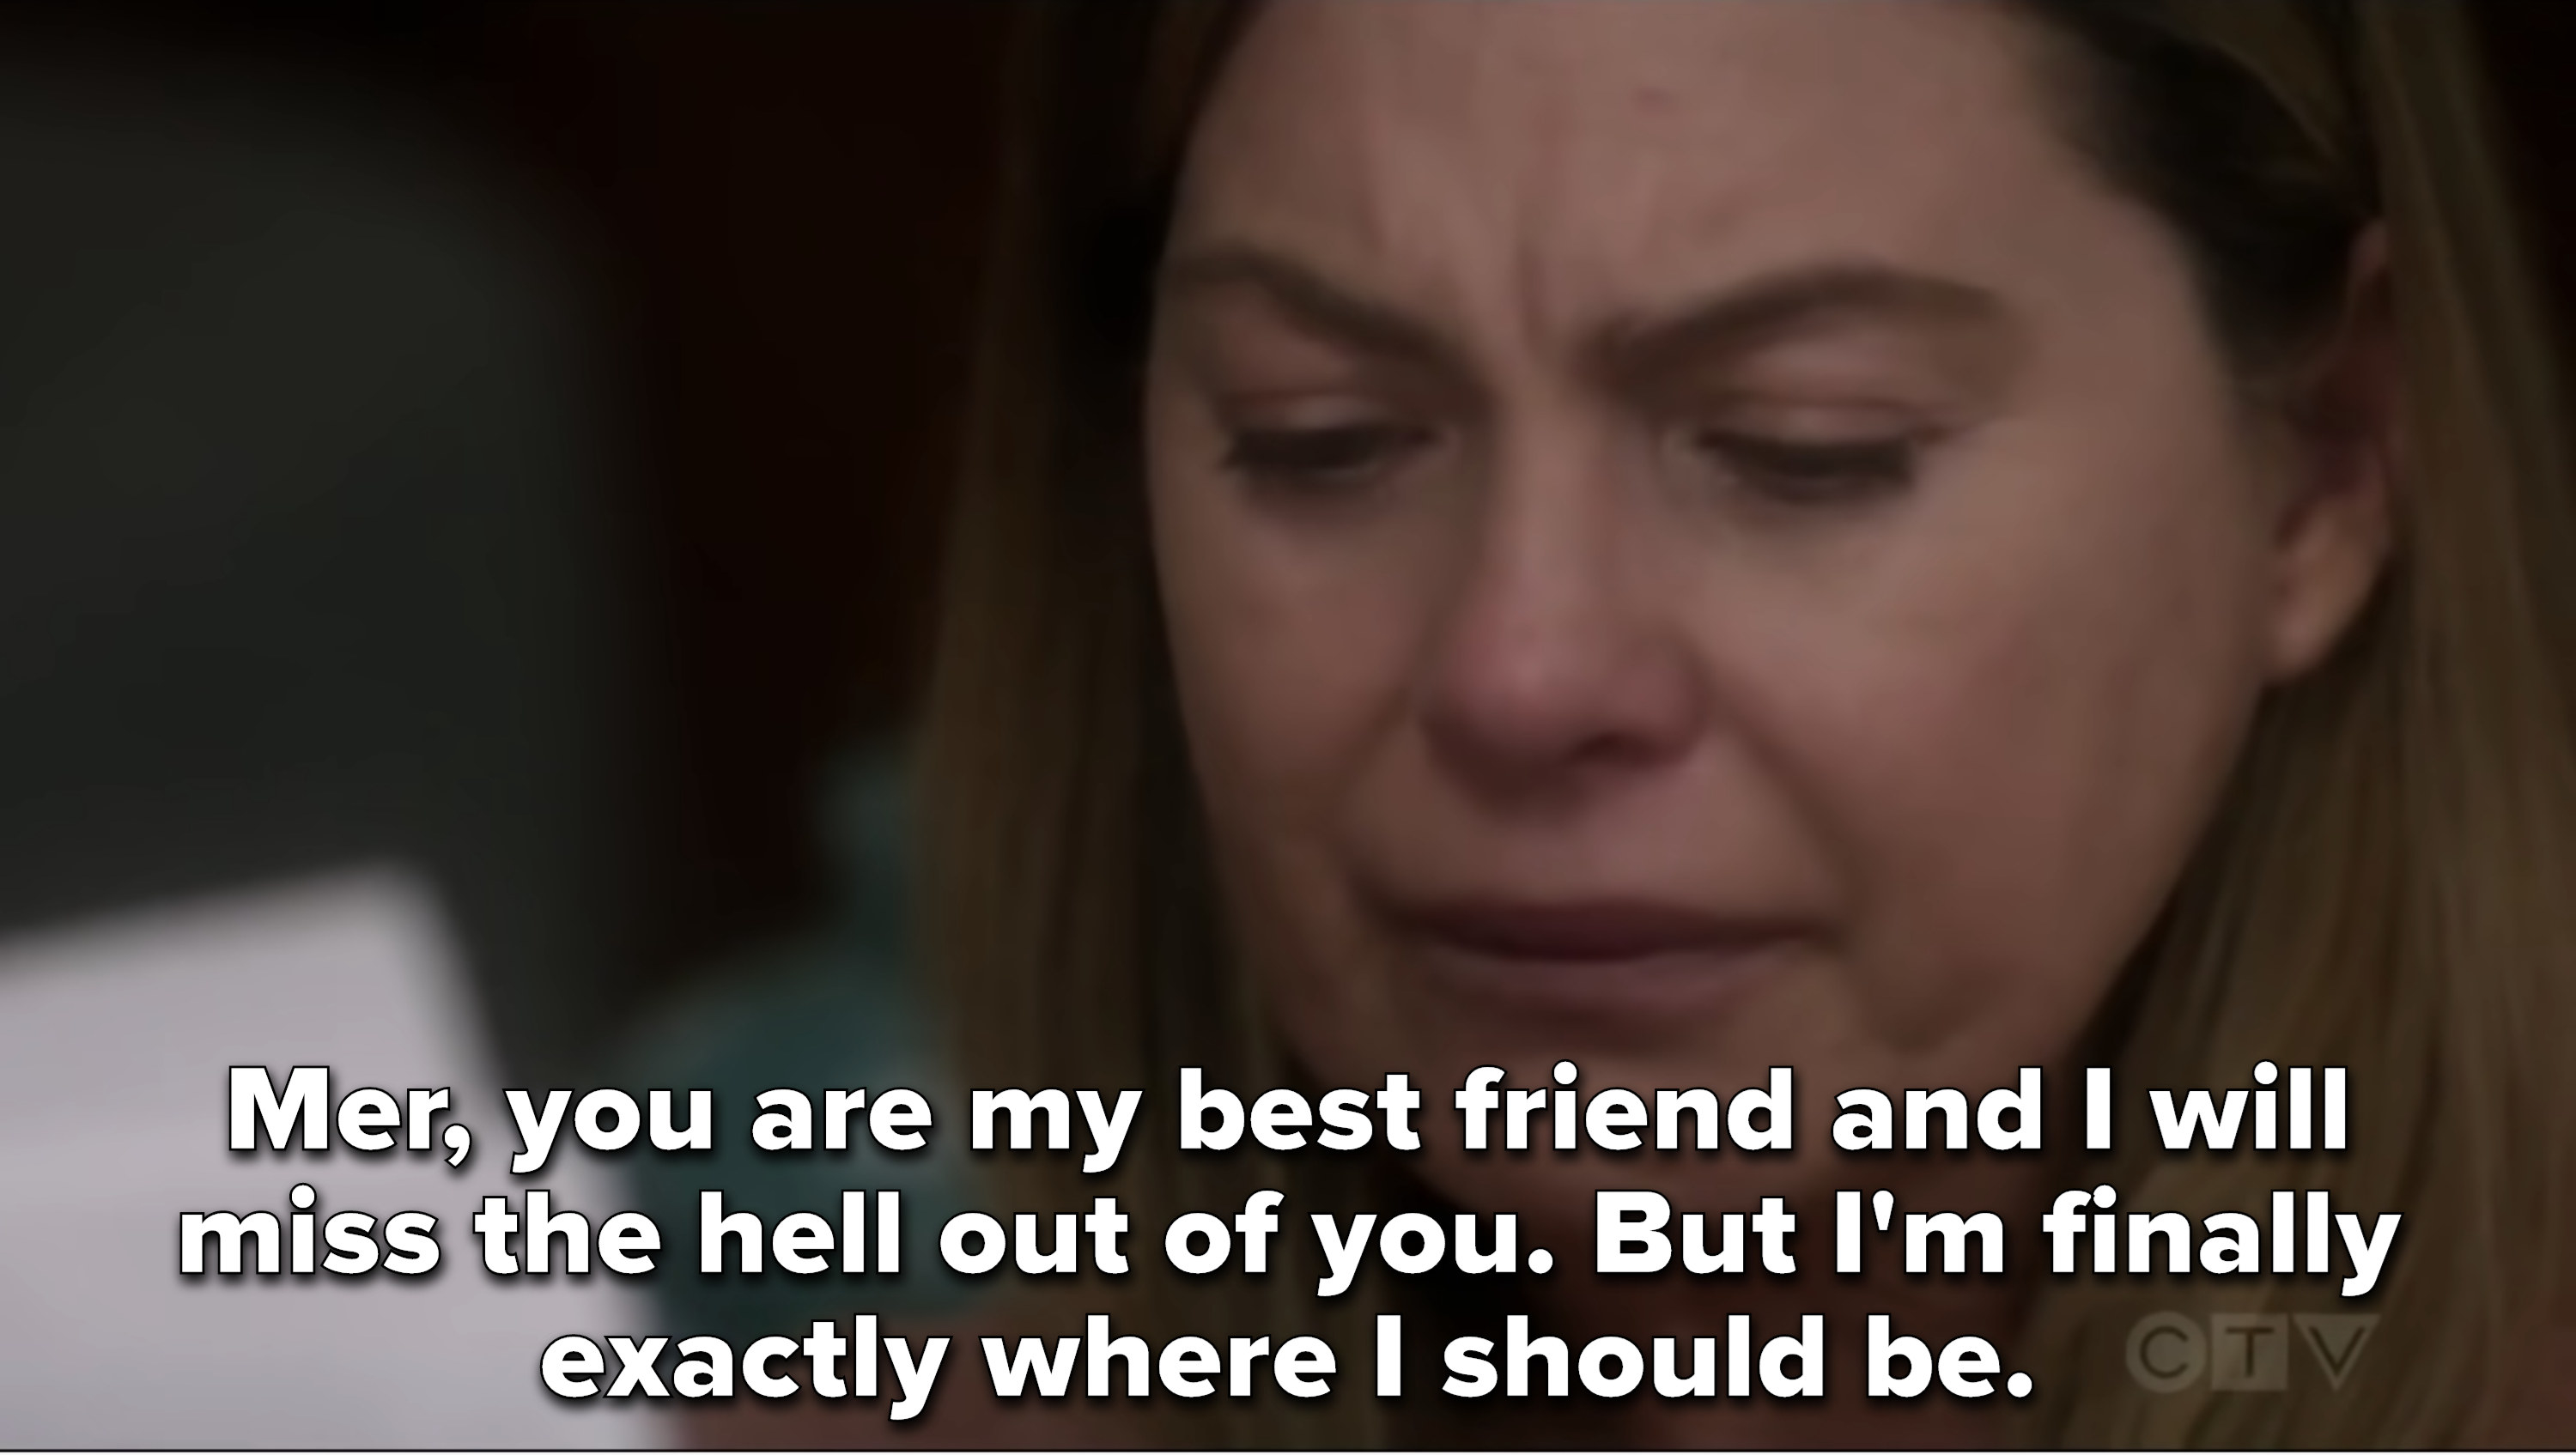 Meredith cries reading Alex's letter, which says she's his best friend but he's where he should be